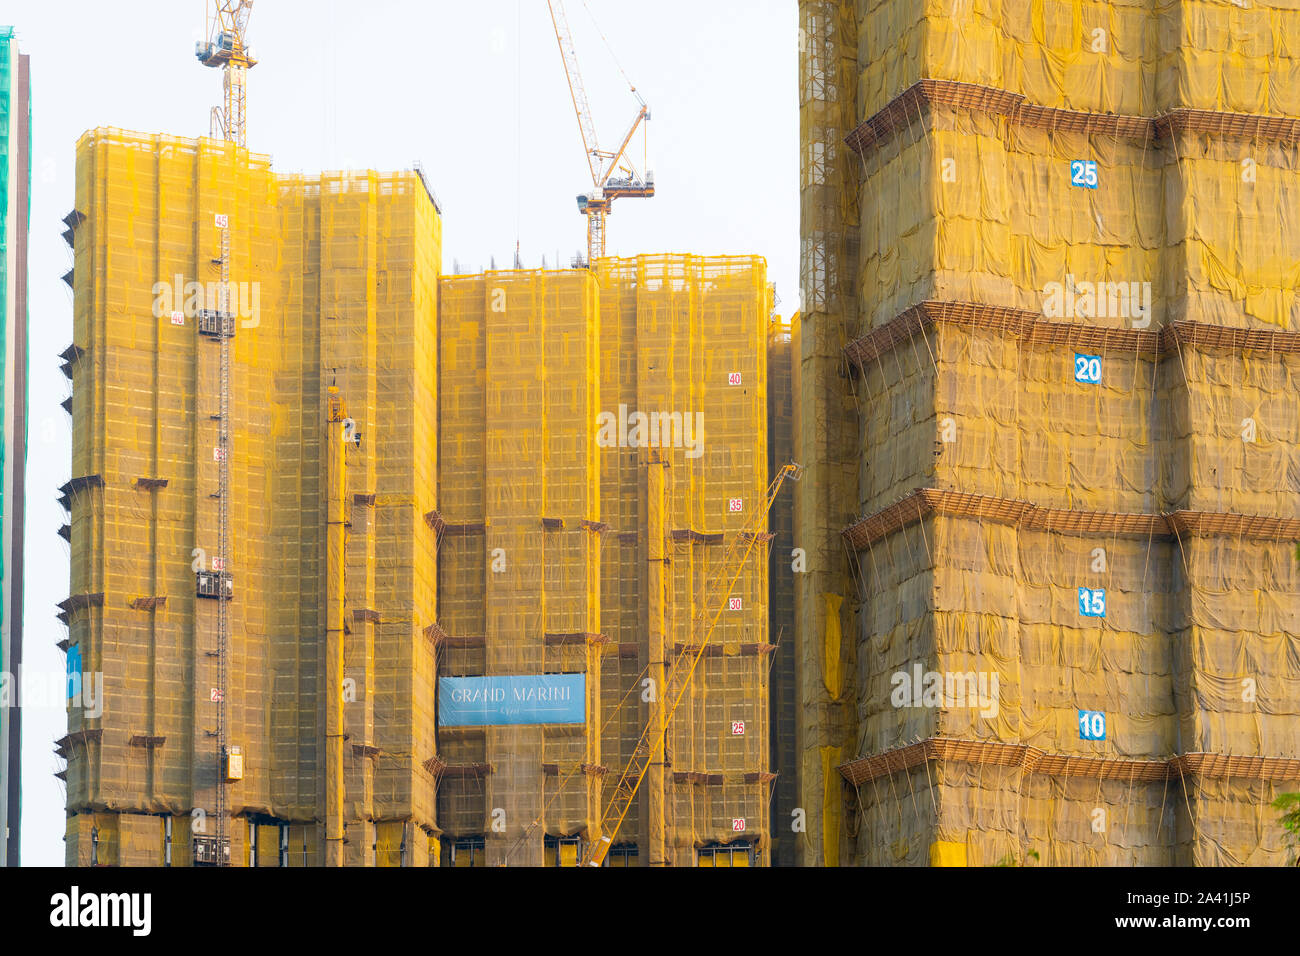 View of new  dense urban high-rise apartment buildings in LOHAS Park new housing estate in New Territories of Hong Kong, China. Stock Photo